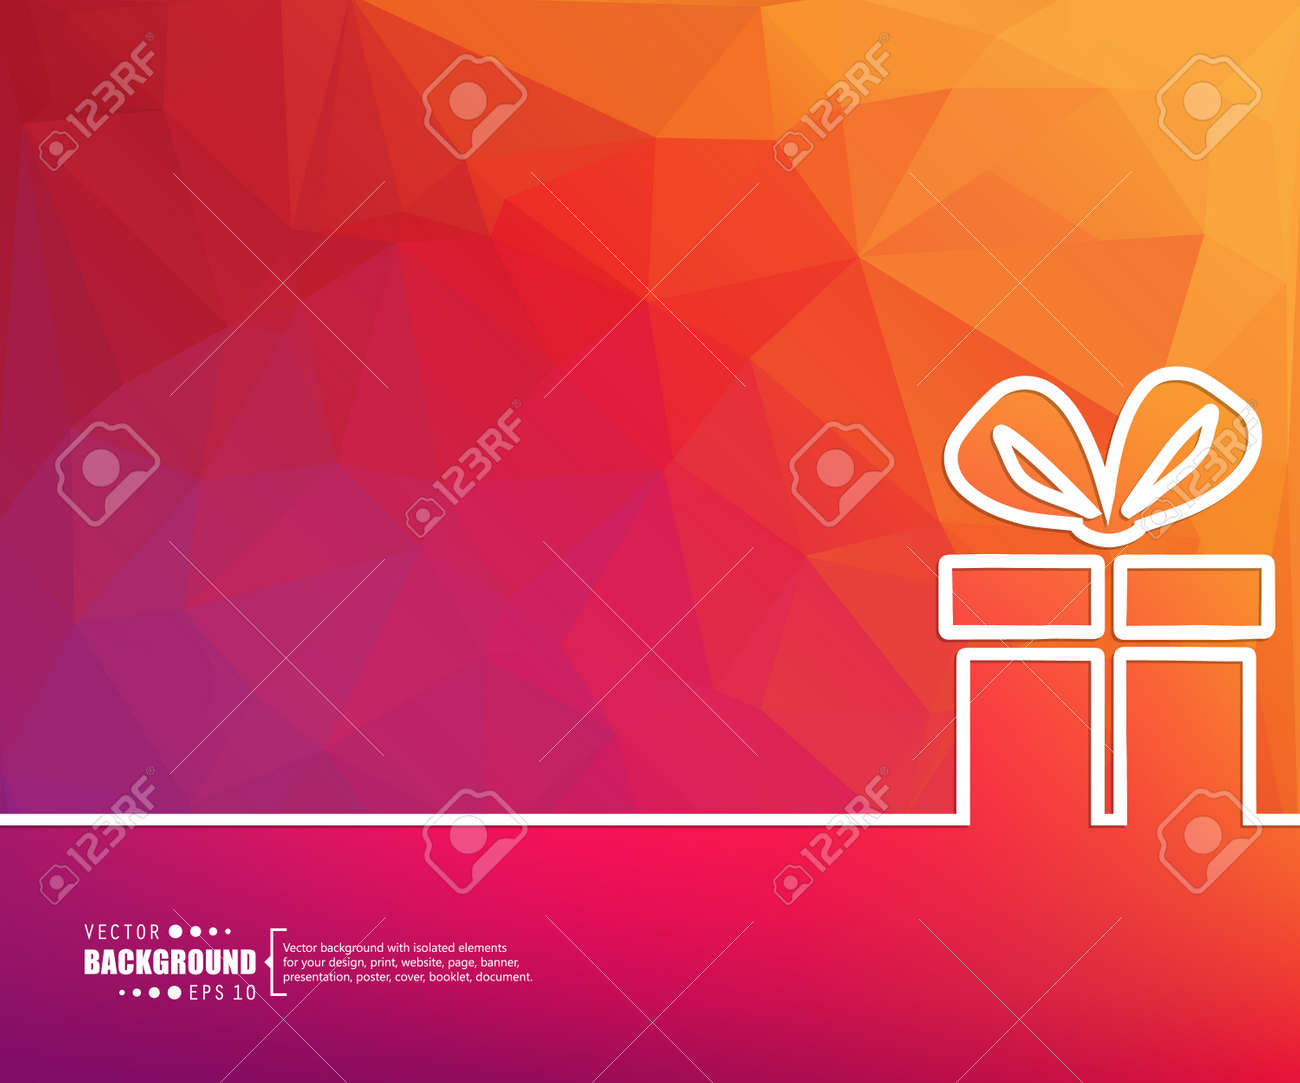 Abstract Creative concept vector background for Web and Mobile Applications, Illustration template design, business infographic, page, brochure, banner, presentation, poster, cover, booklet, document. - 44702725